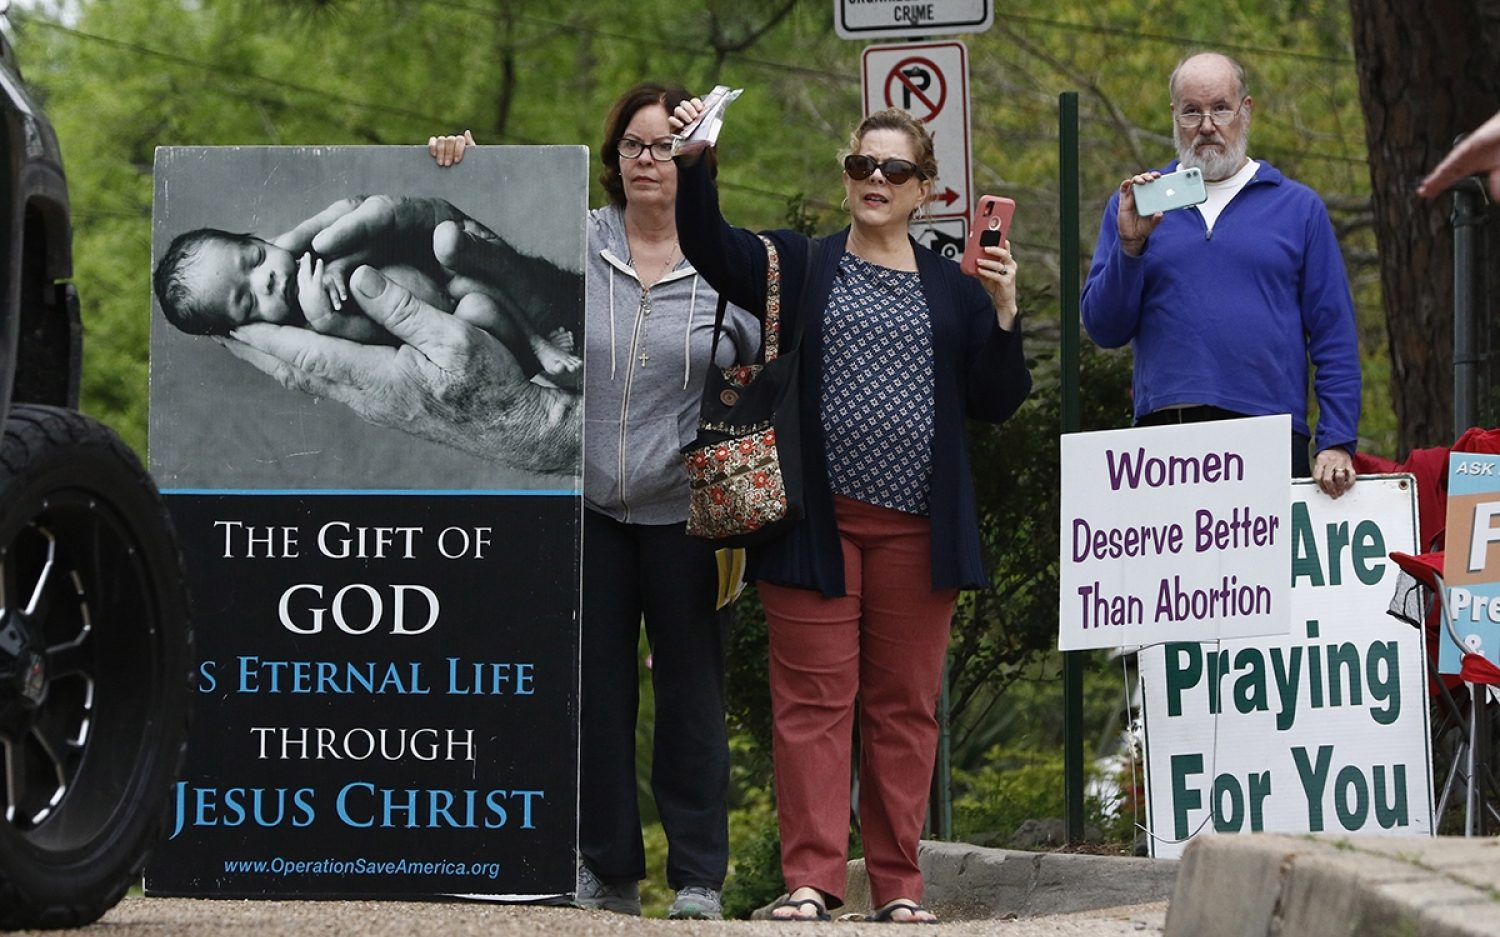 Ordering pro-lifers to stay at home